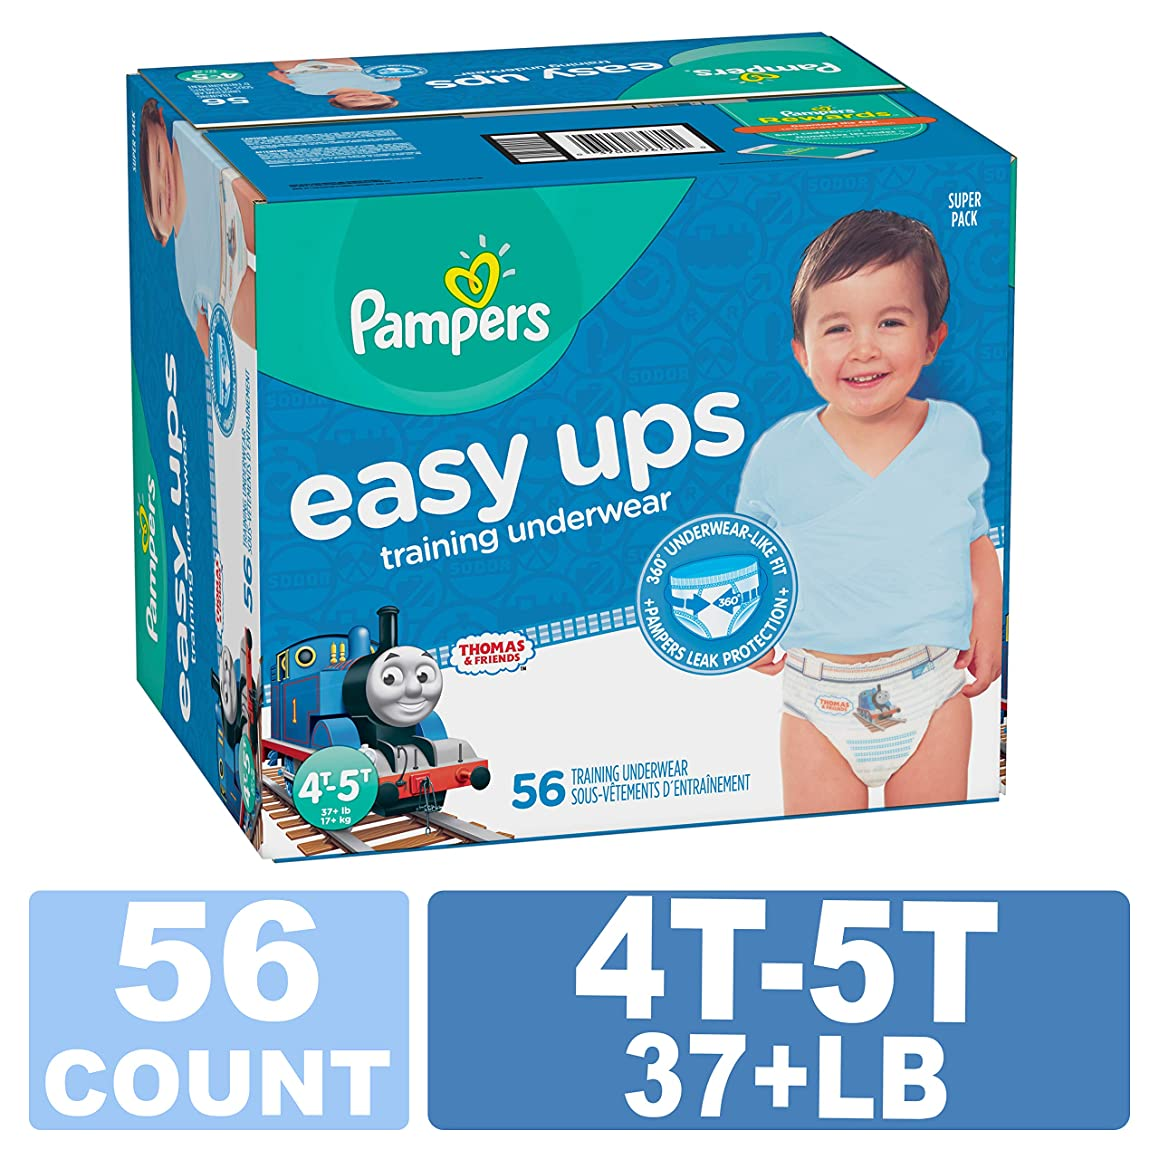 Pampers Easy Ups Training Pants Pull On Disposable Diapers for Boys, 4T-5T, 56 Count, SUPER PACK